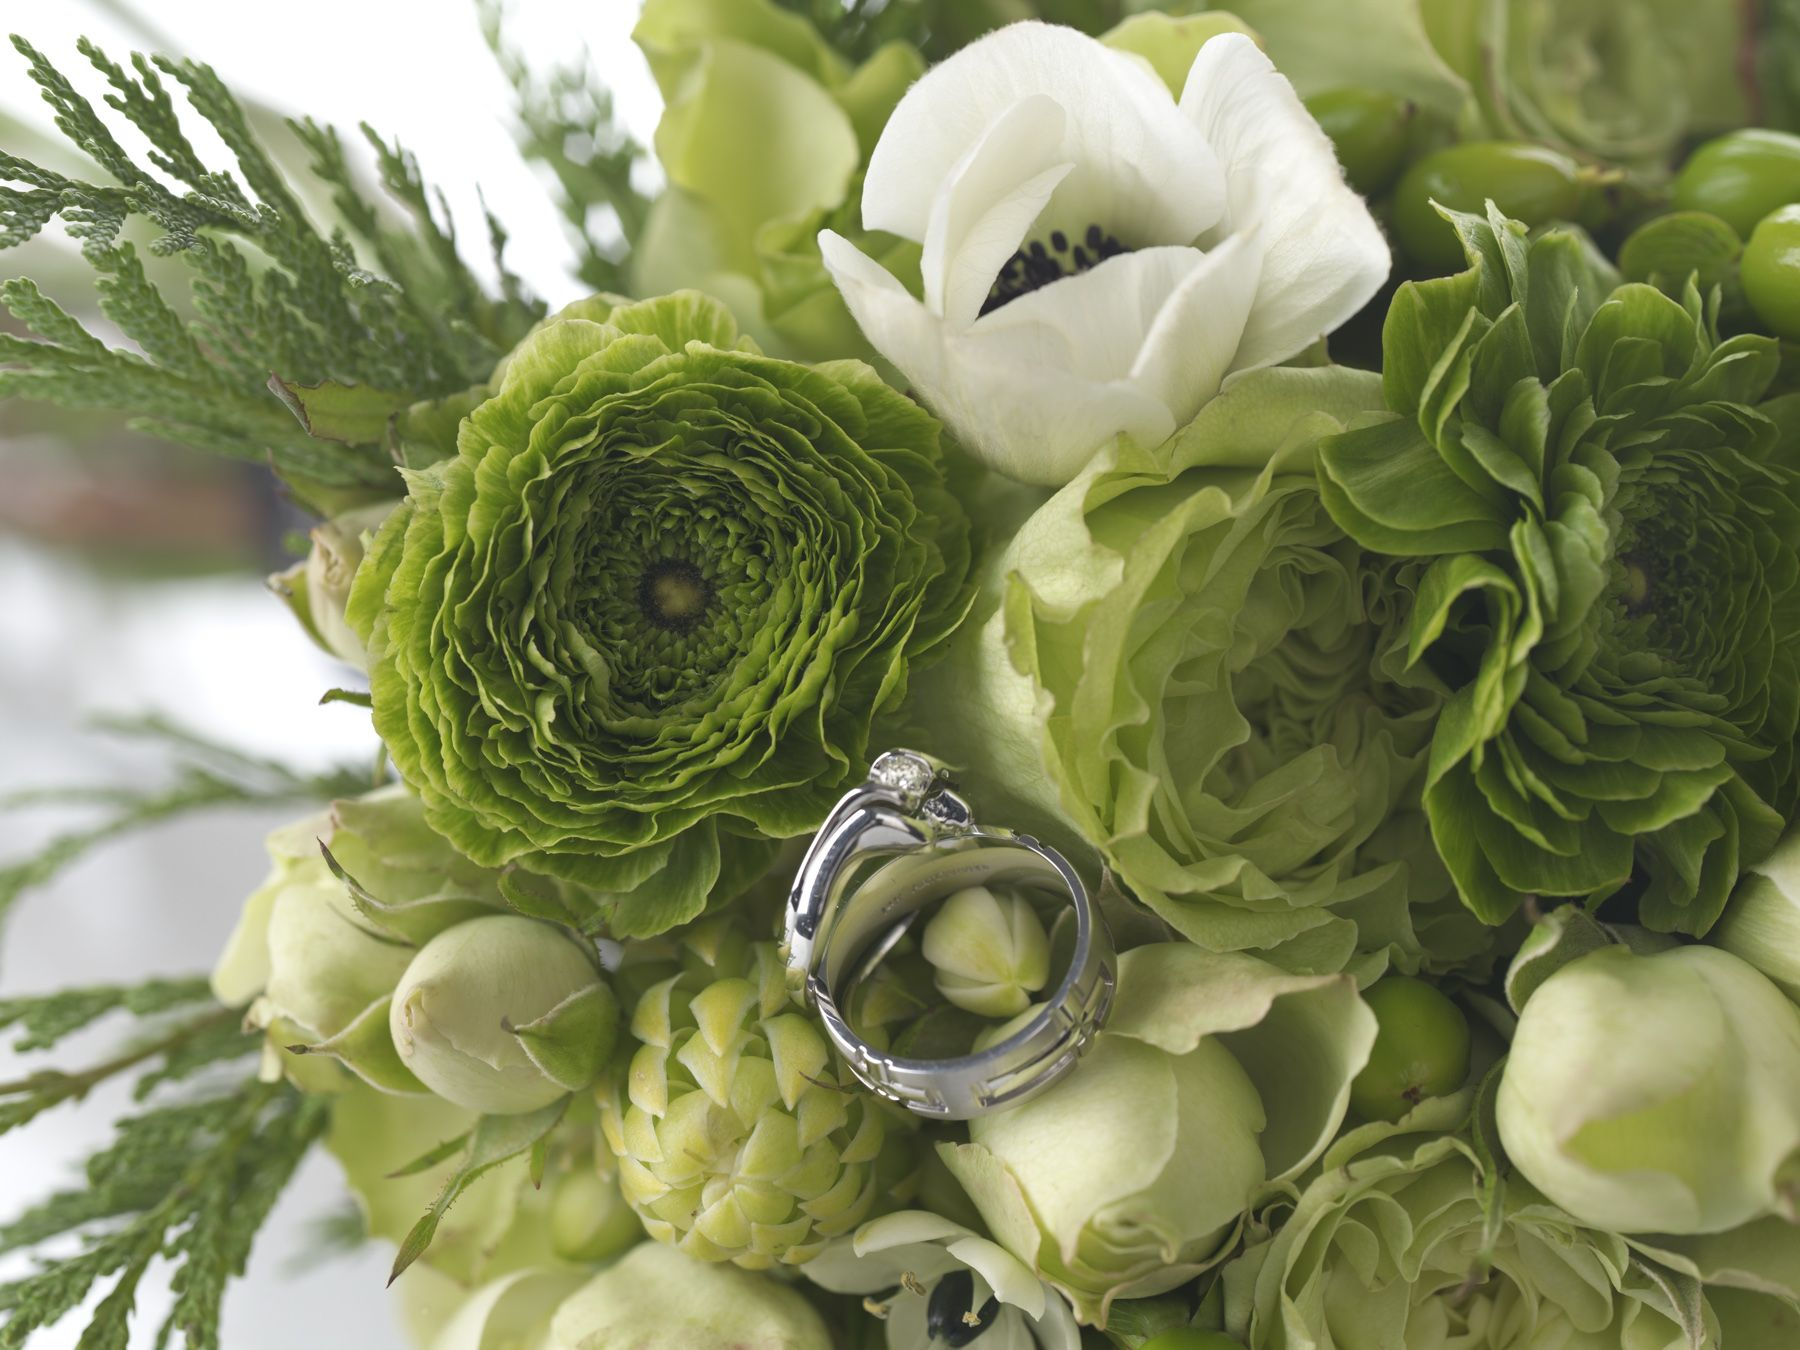 wallpaper wedding com rings hd hands bouquet roses